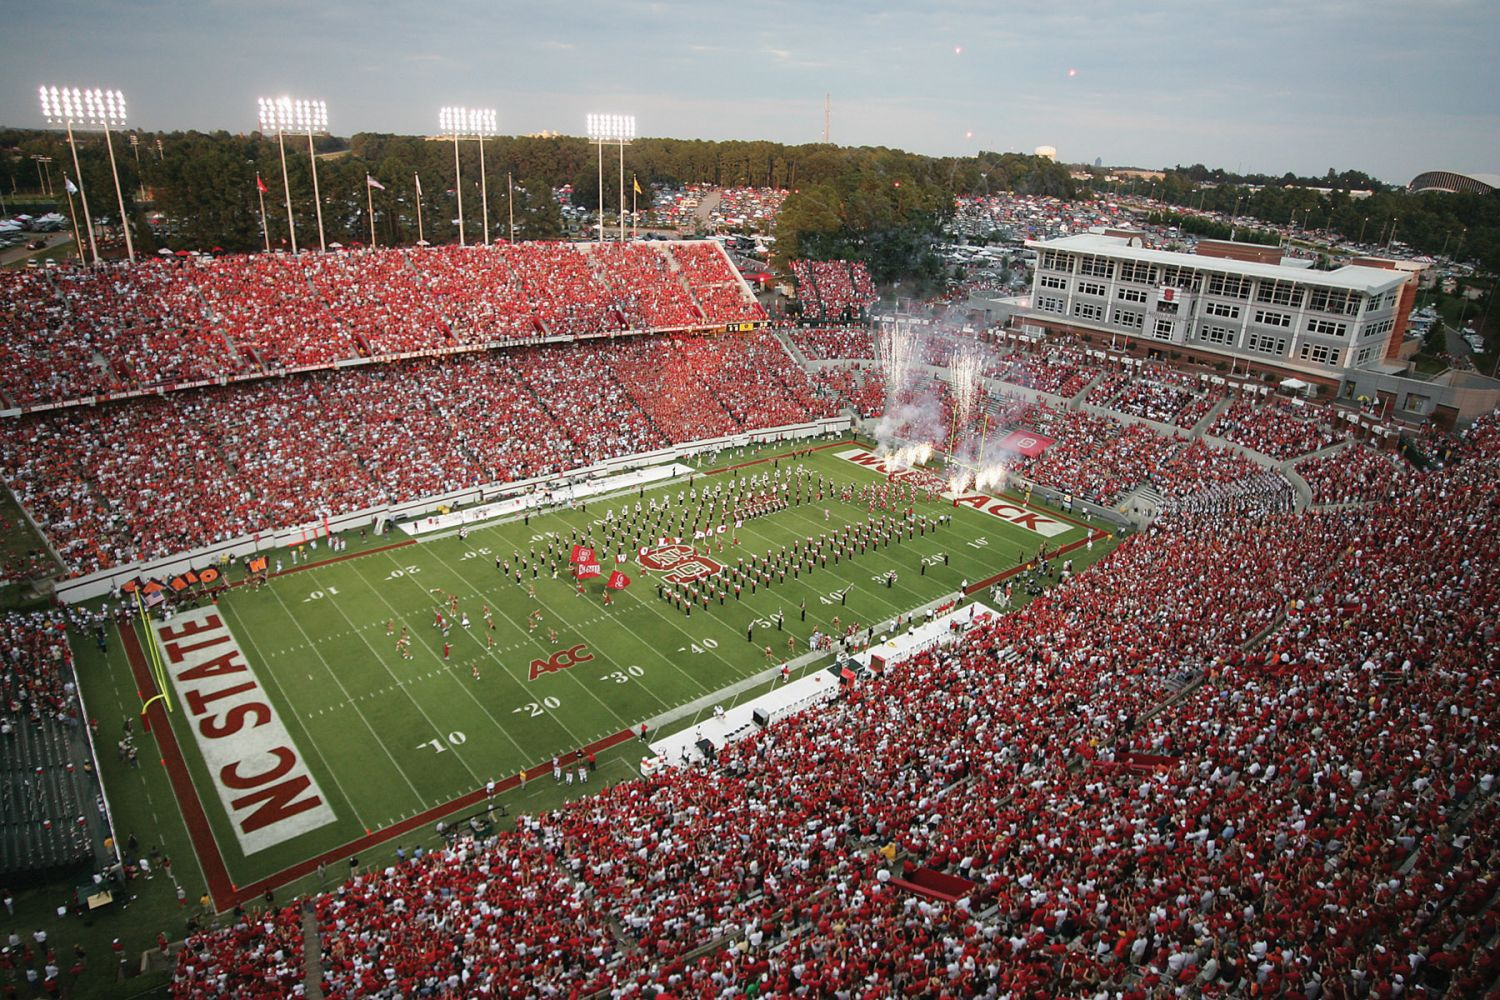 North Carolina State University Raleigh